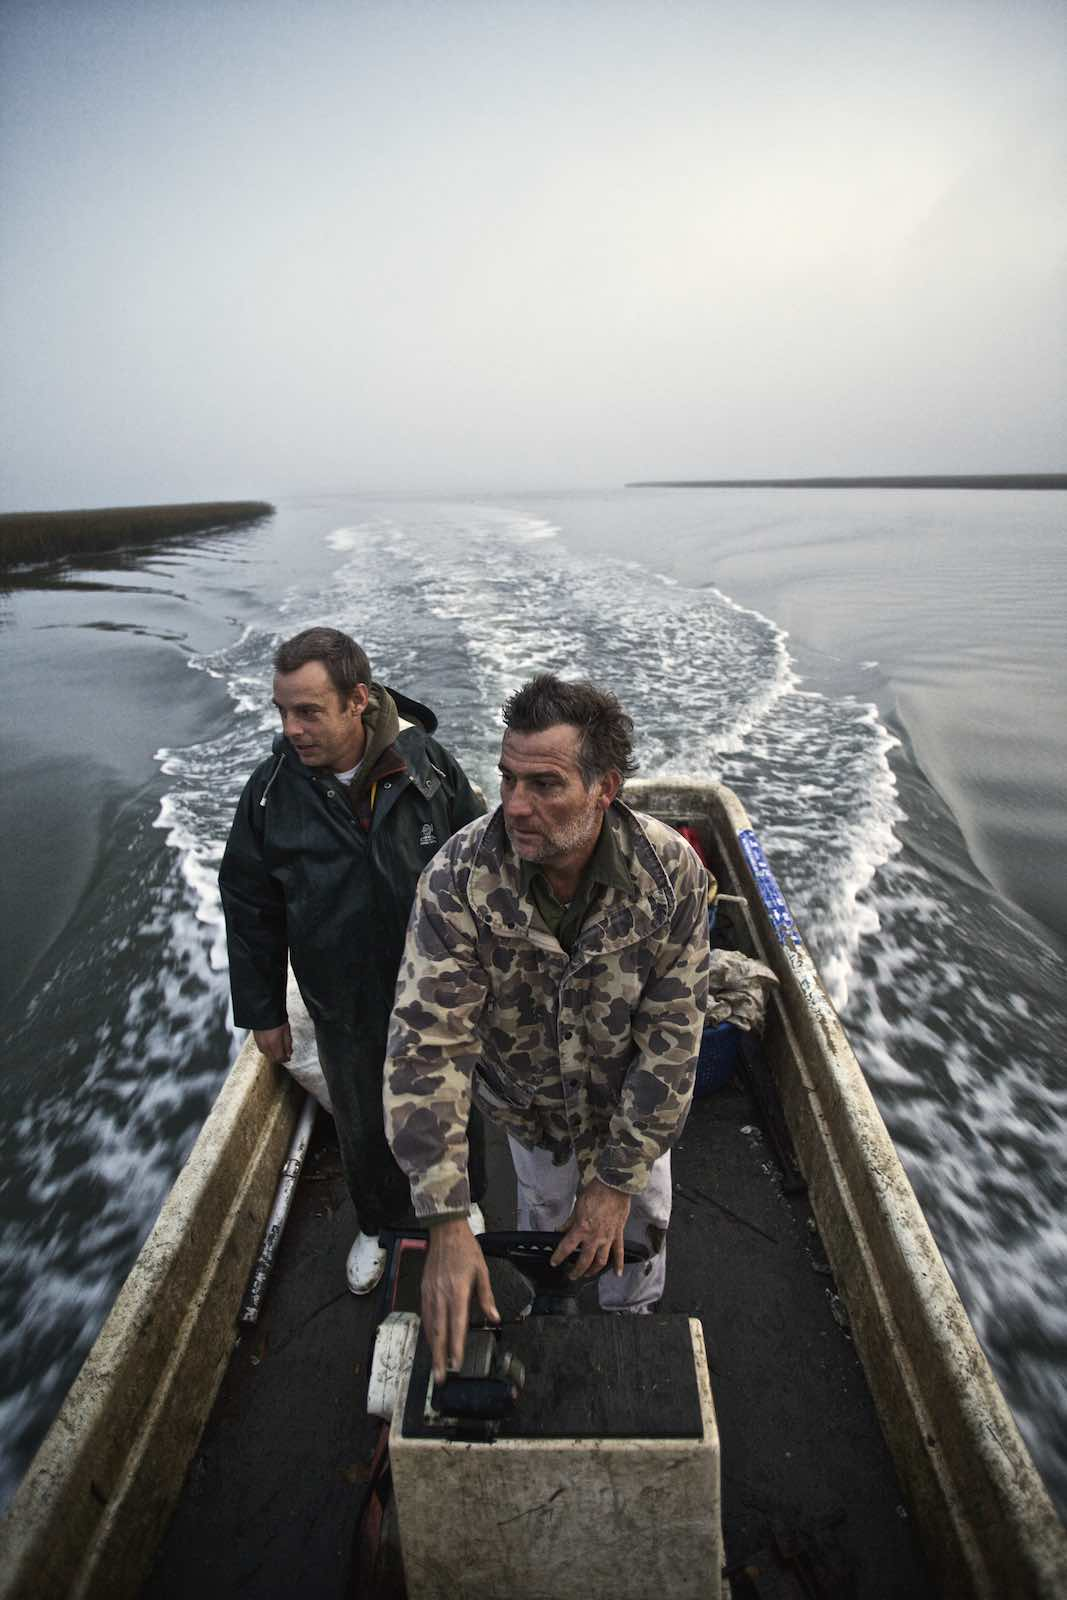 Fishermen guiding their boat across dark waters.